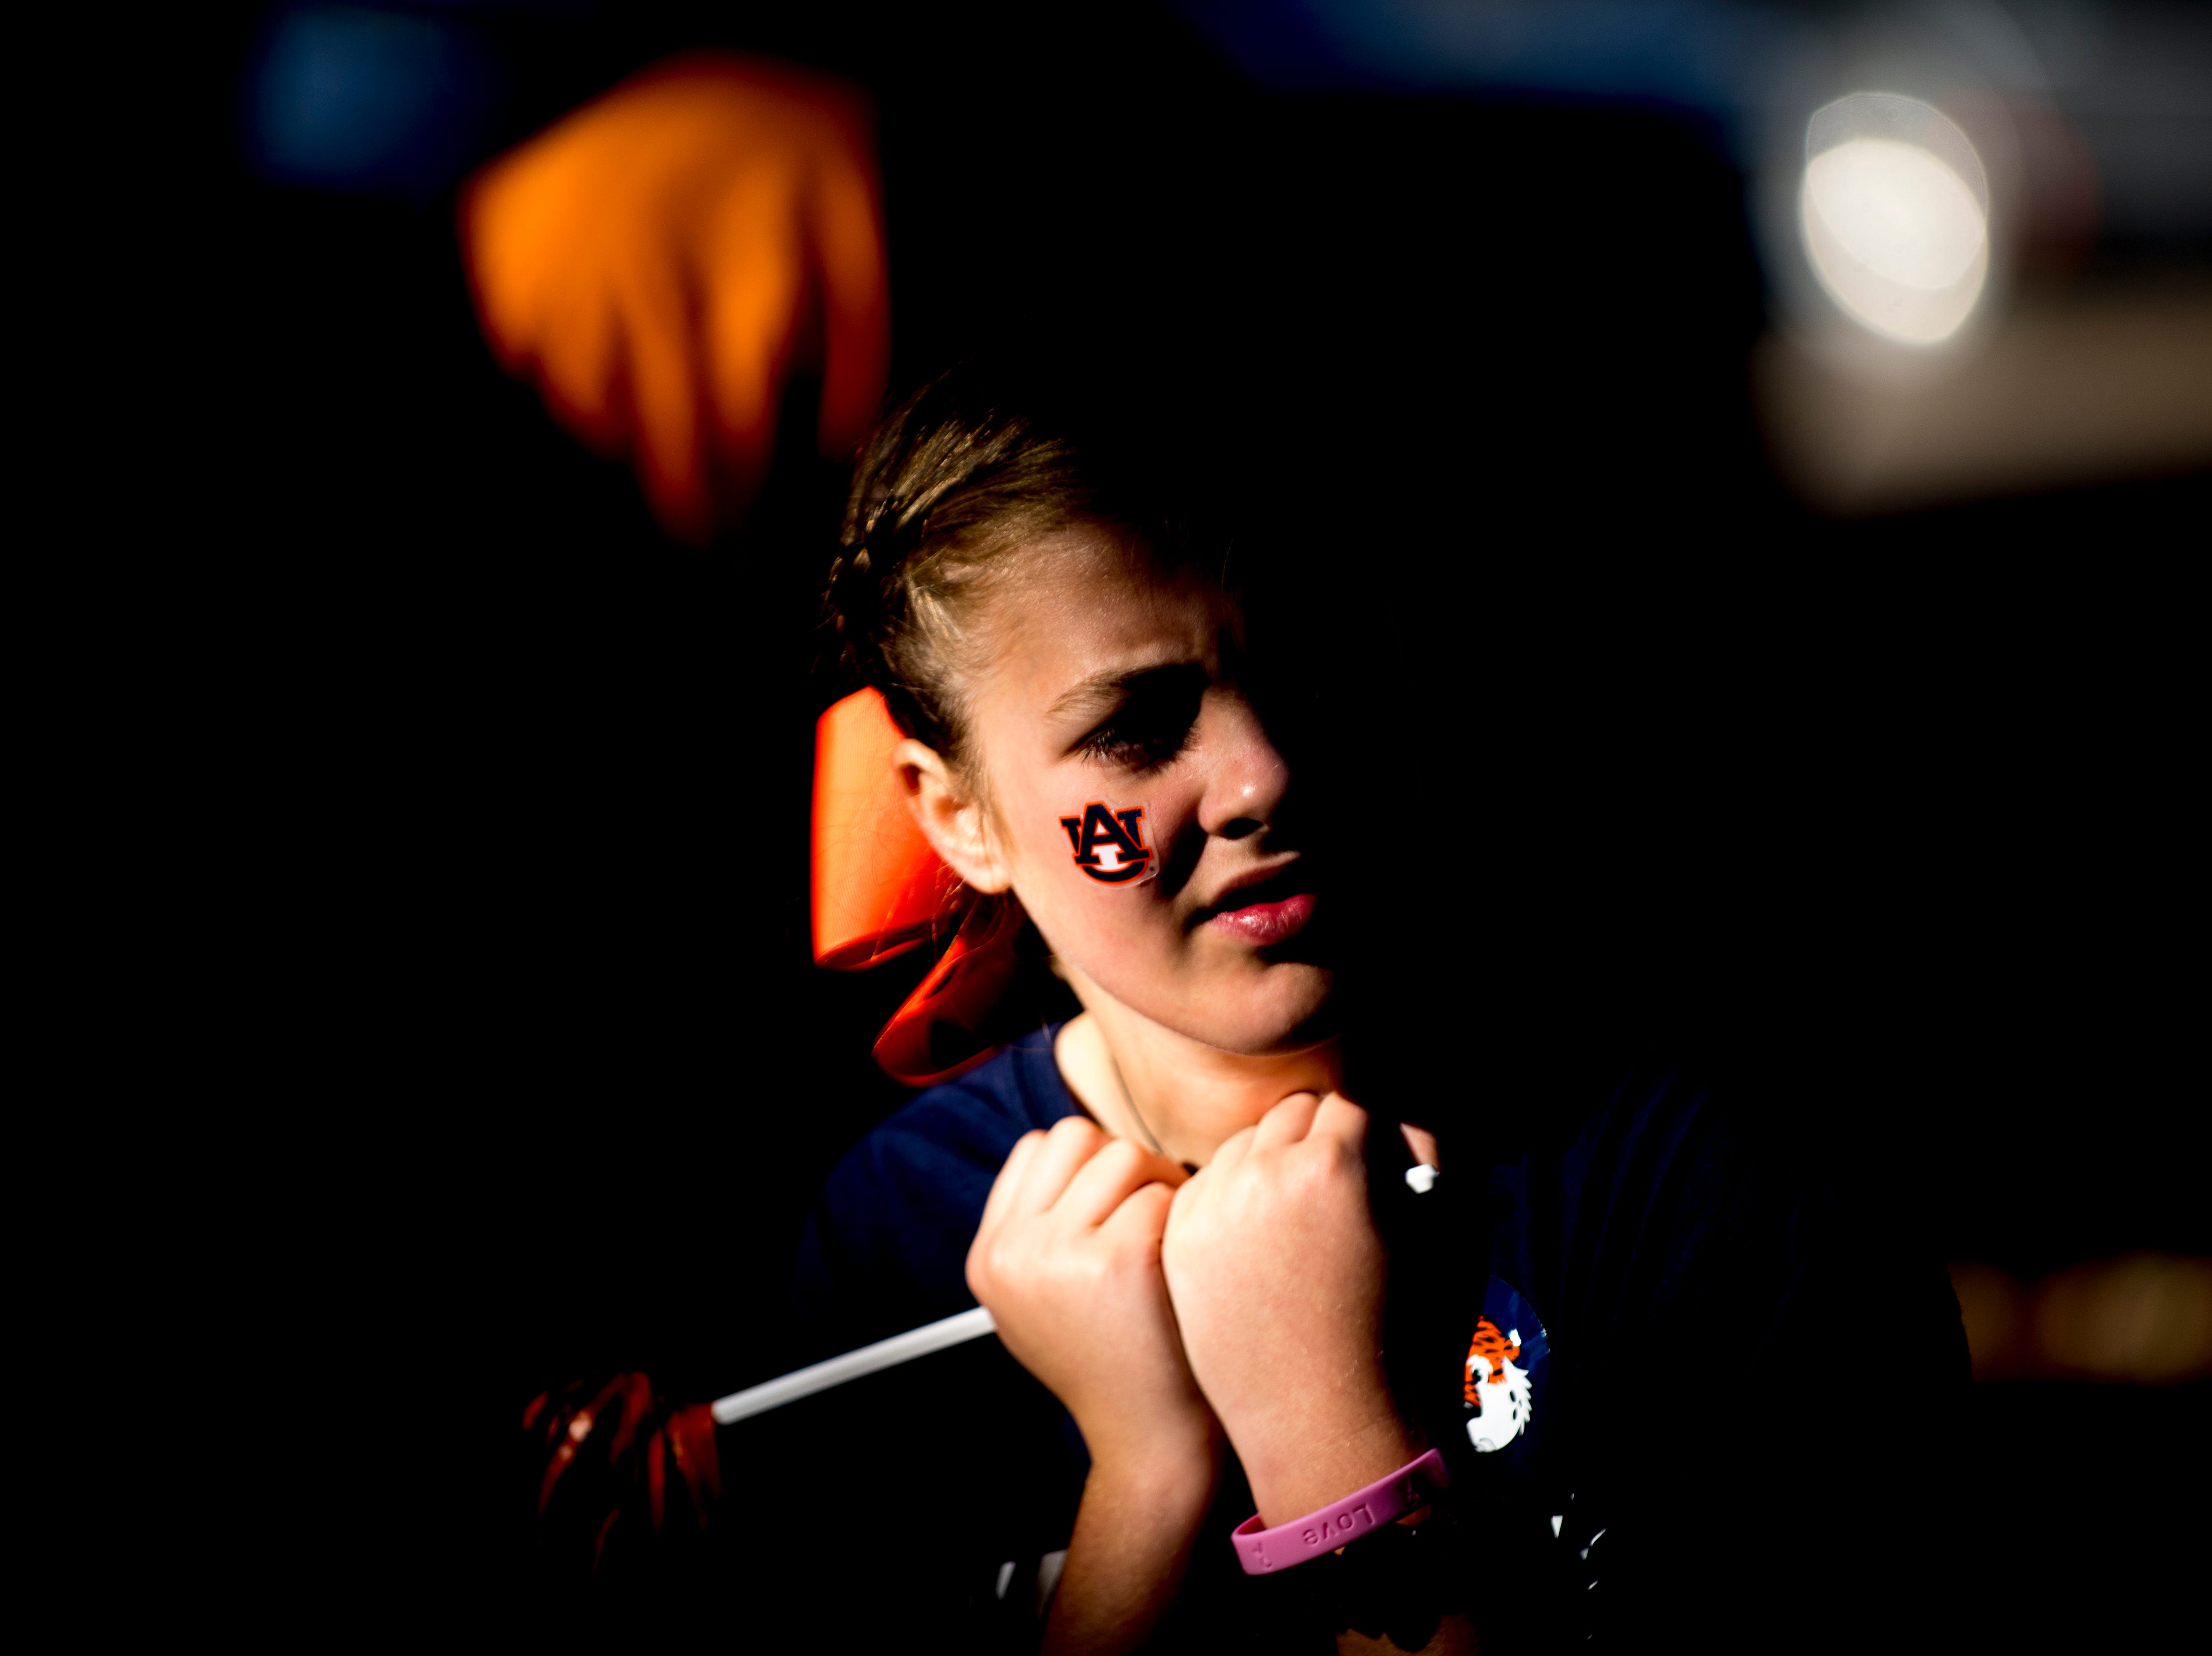 A young Auburn fan rests in the shade ahead of the Tiger Walk during a game between Tennessee and Auburn at Jordan-Hare Stadium in Auburn, Alabama on Saturday, October 13, 2018.